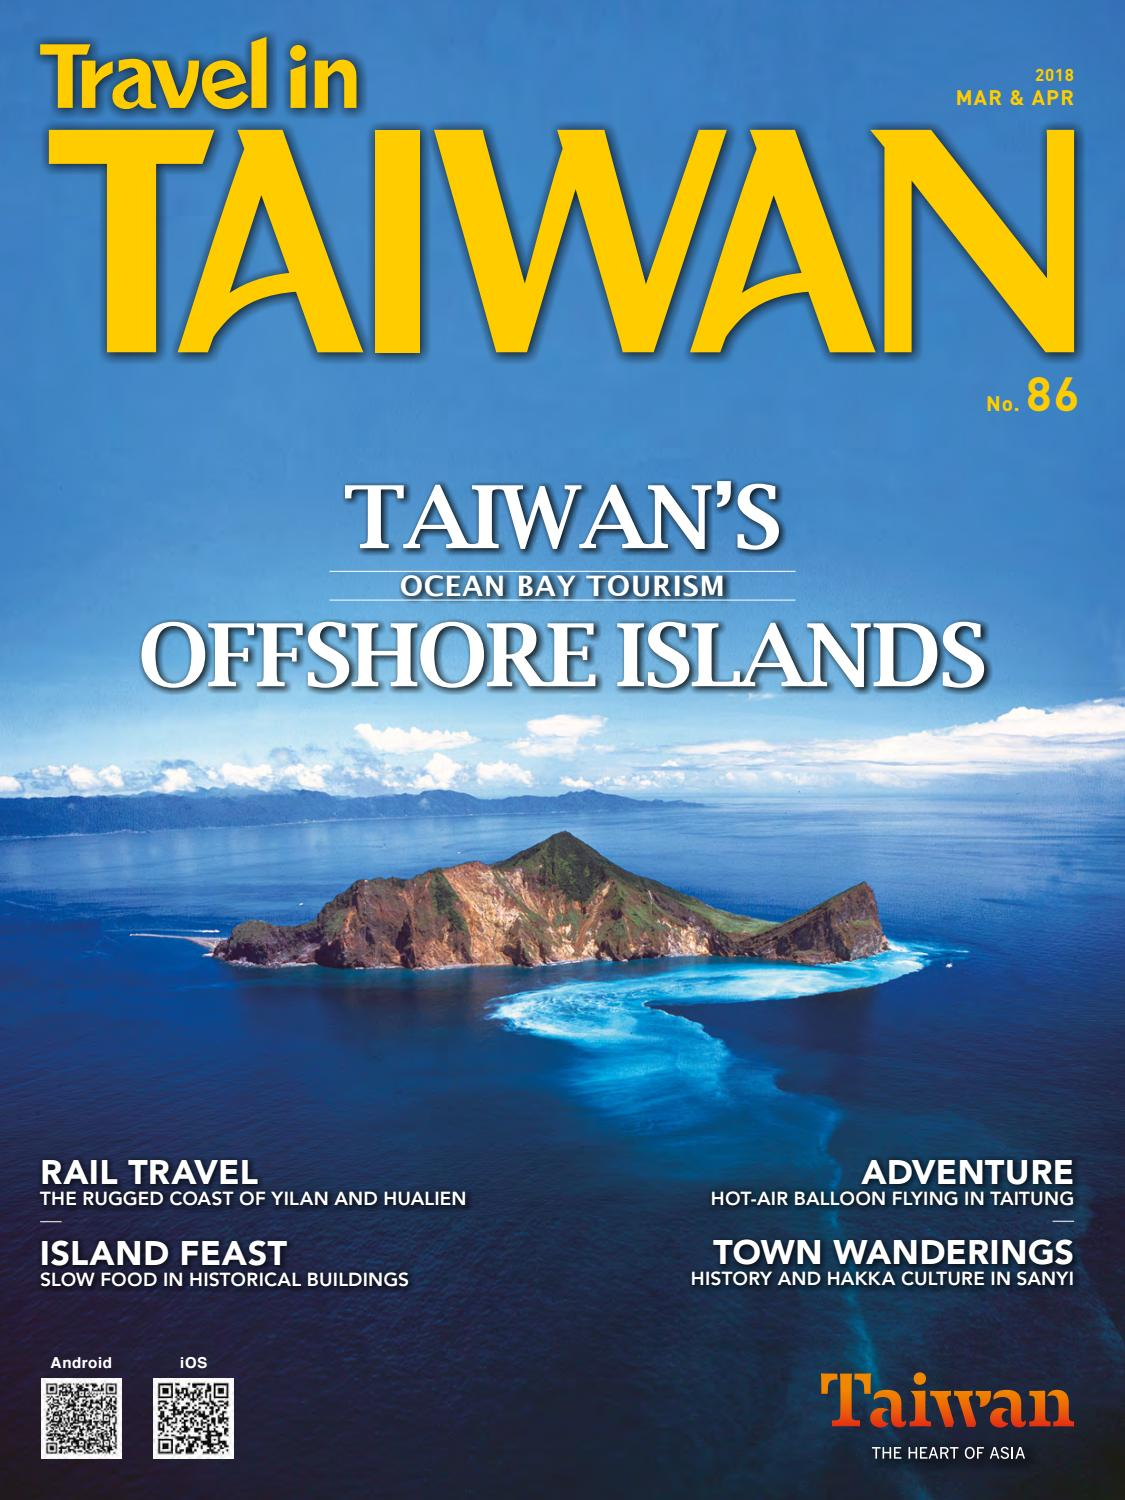 Travel in Taiwan (No 86 2018 03/04 ) by Travel in Taiwan - issuu